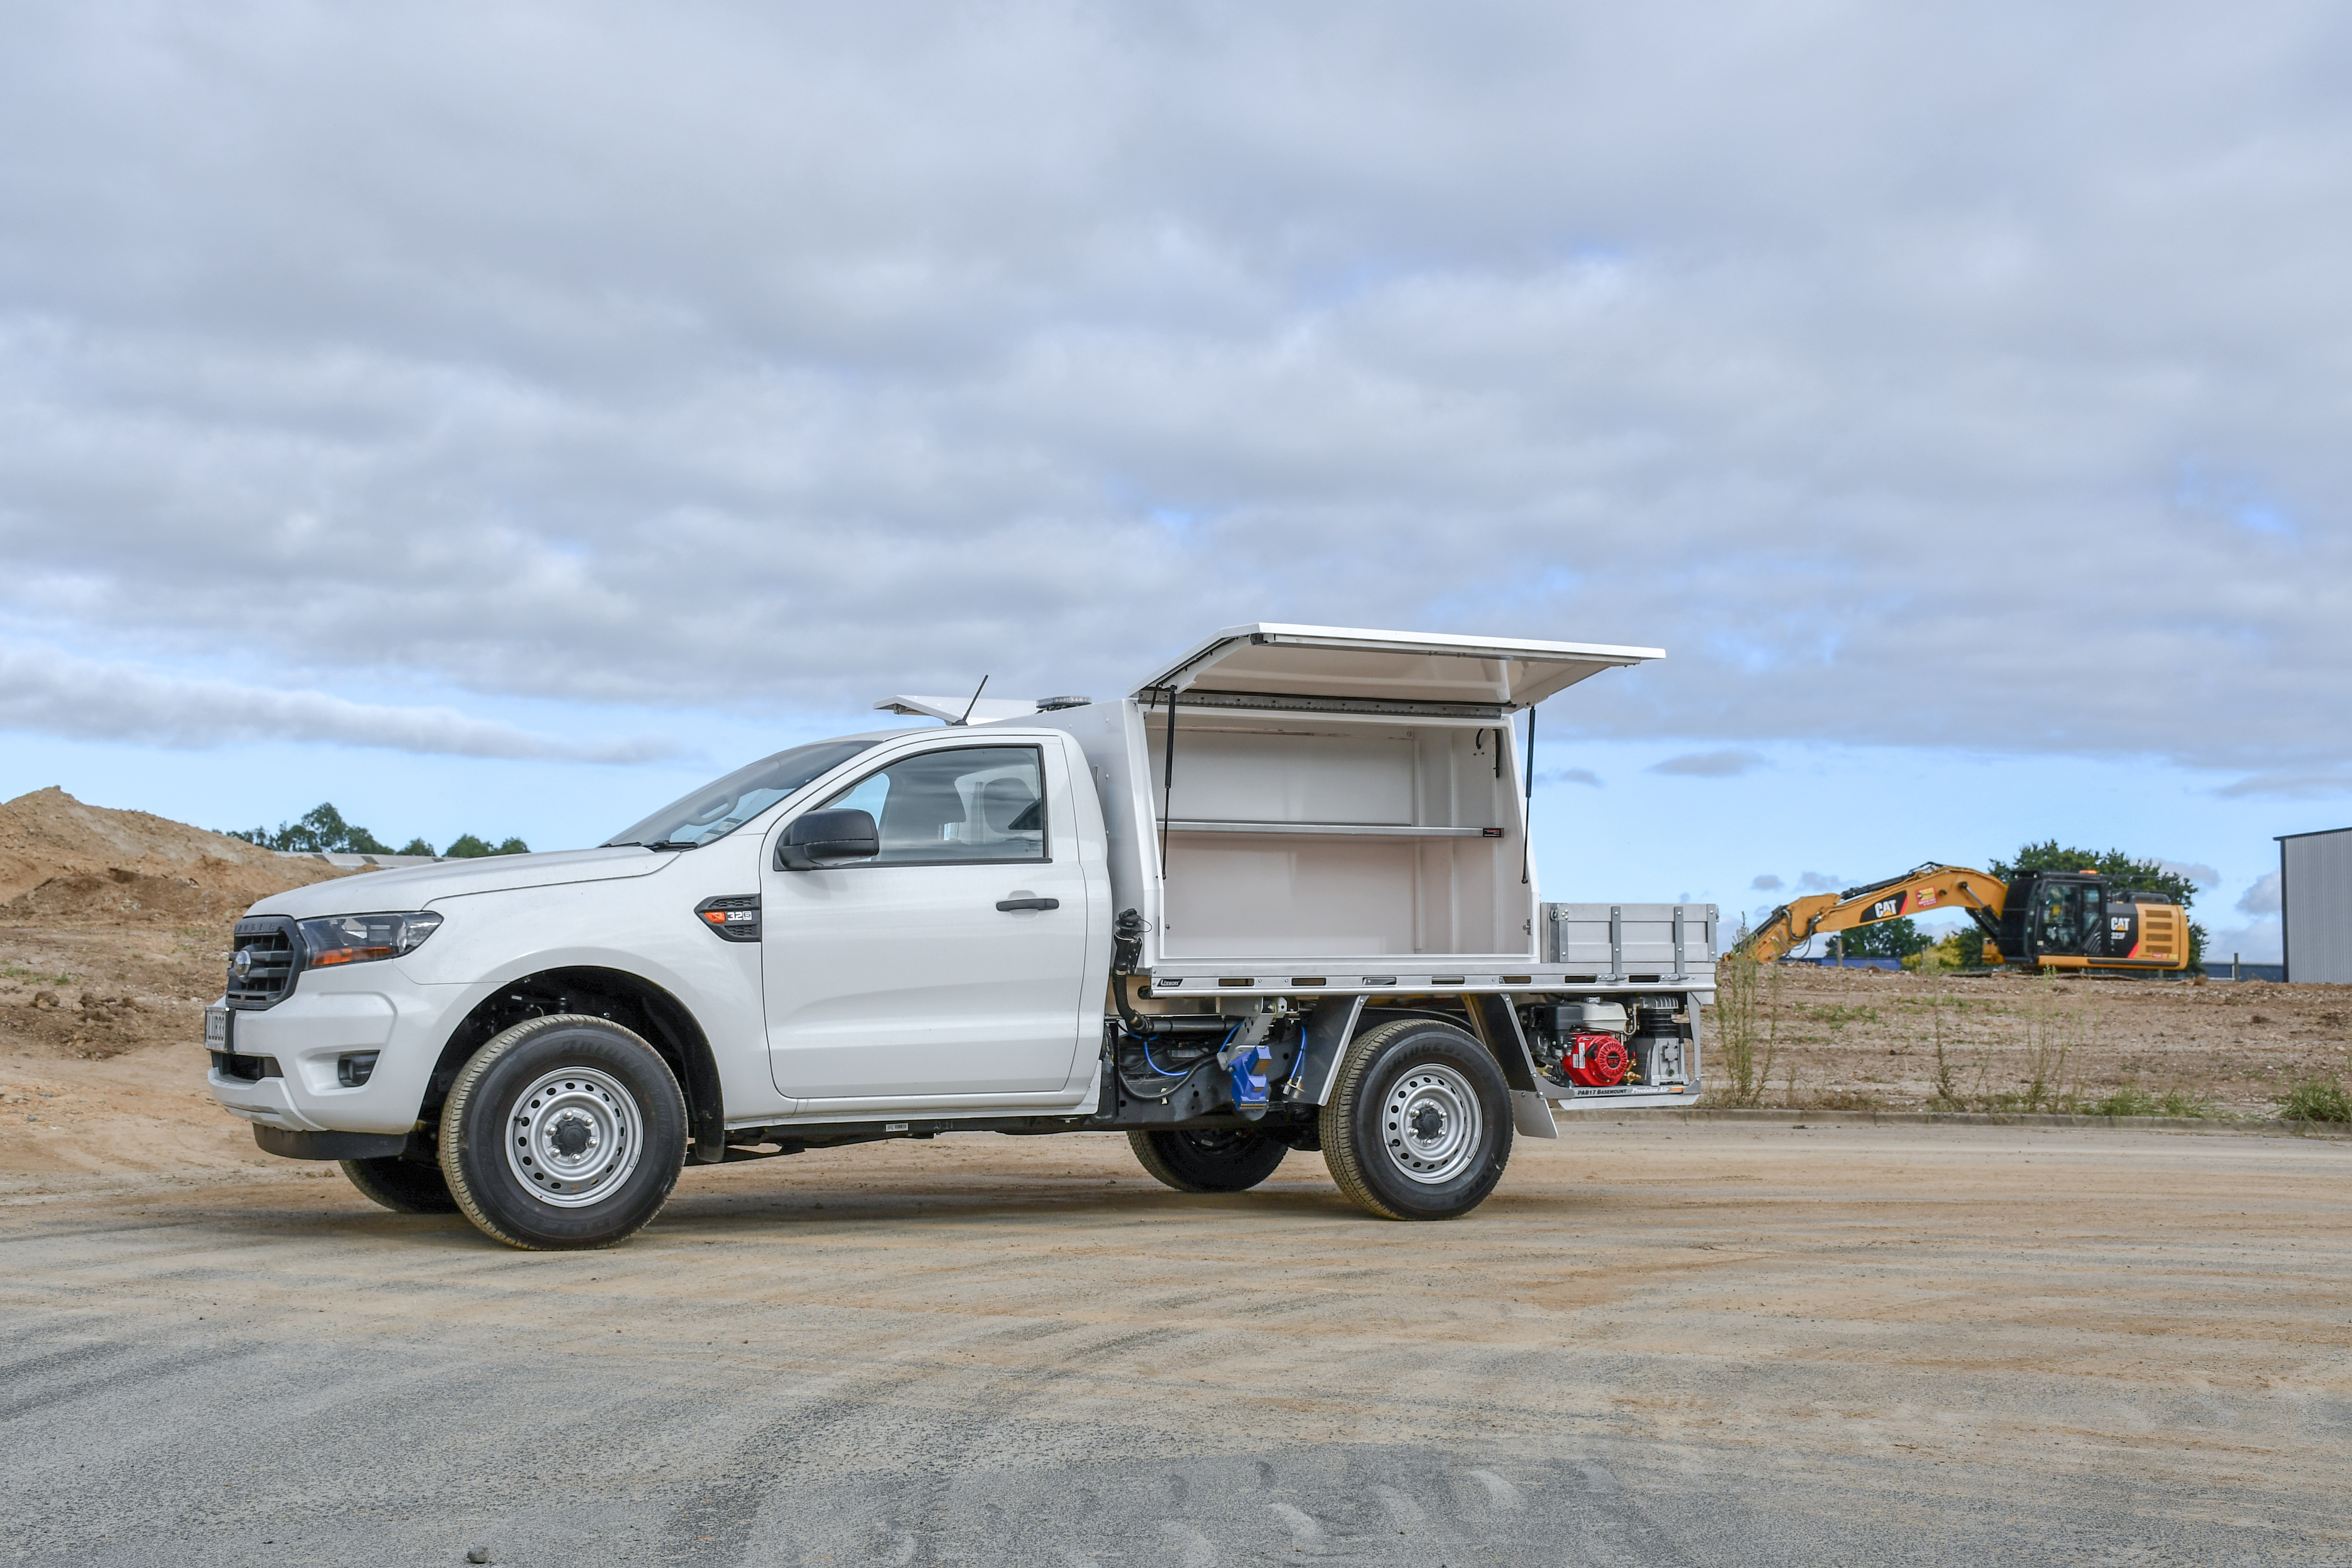 Ford Ranger Fitout - Flat Deck + Service Body